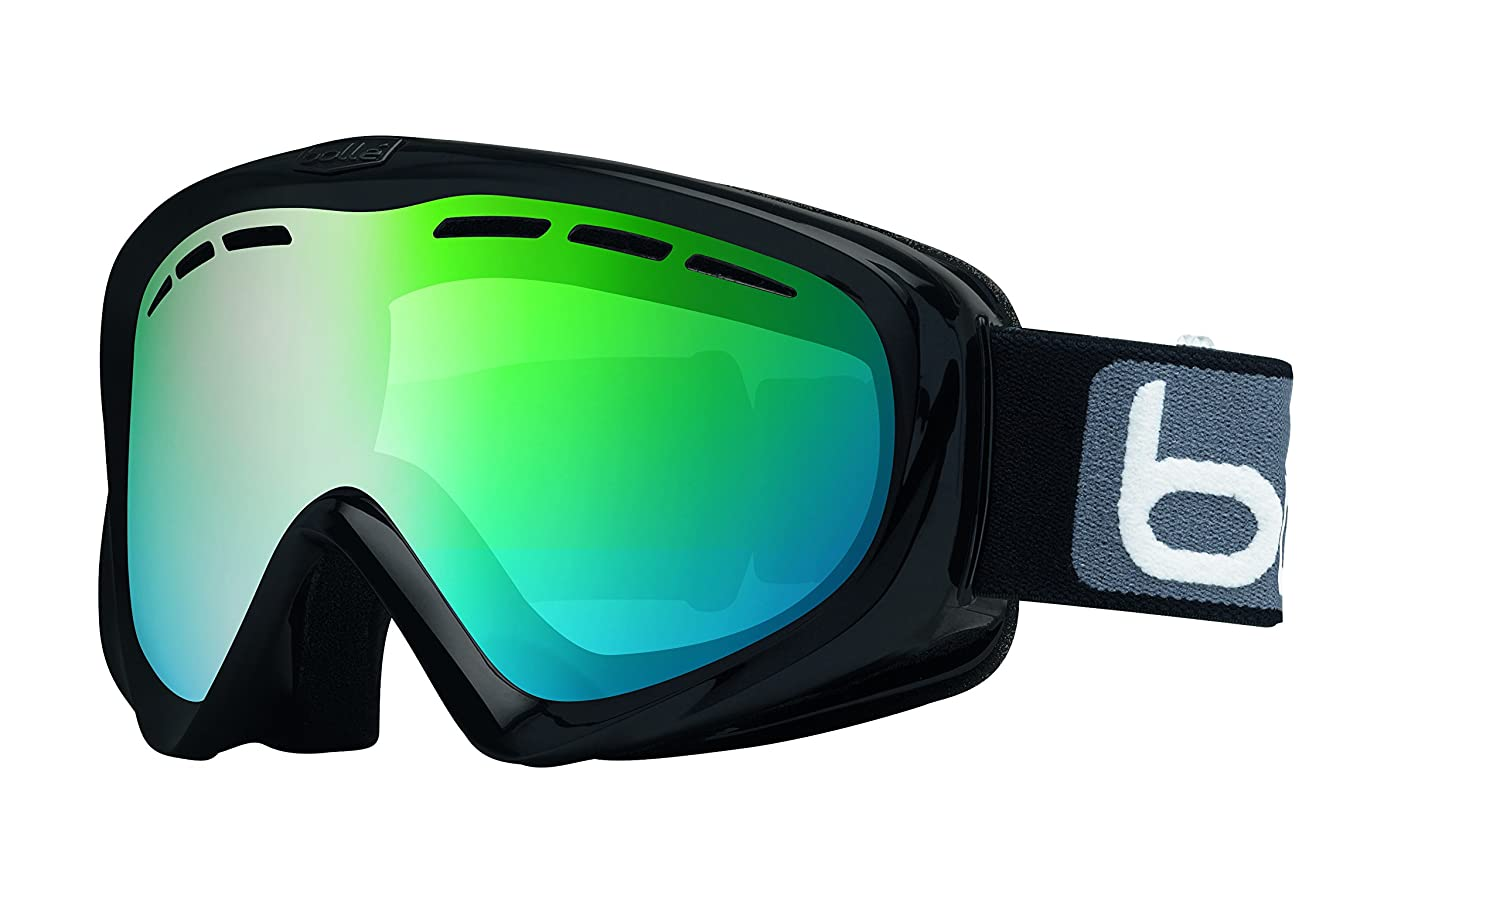 Direct 21603 Bolle Y6 OTG Goggles Green Emerald One Size Pro-Motion Distributing